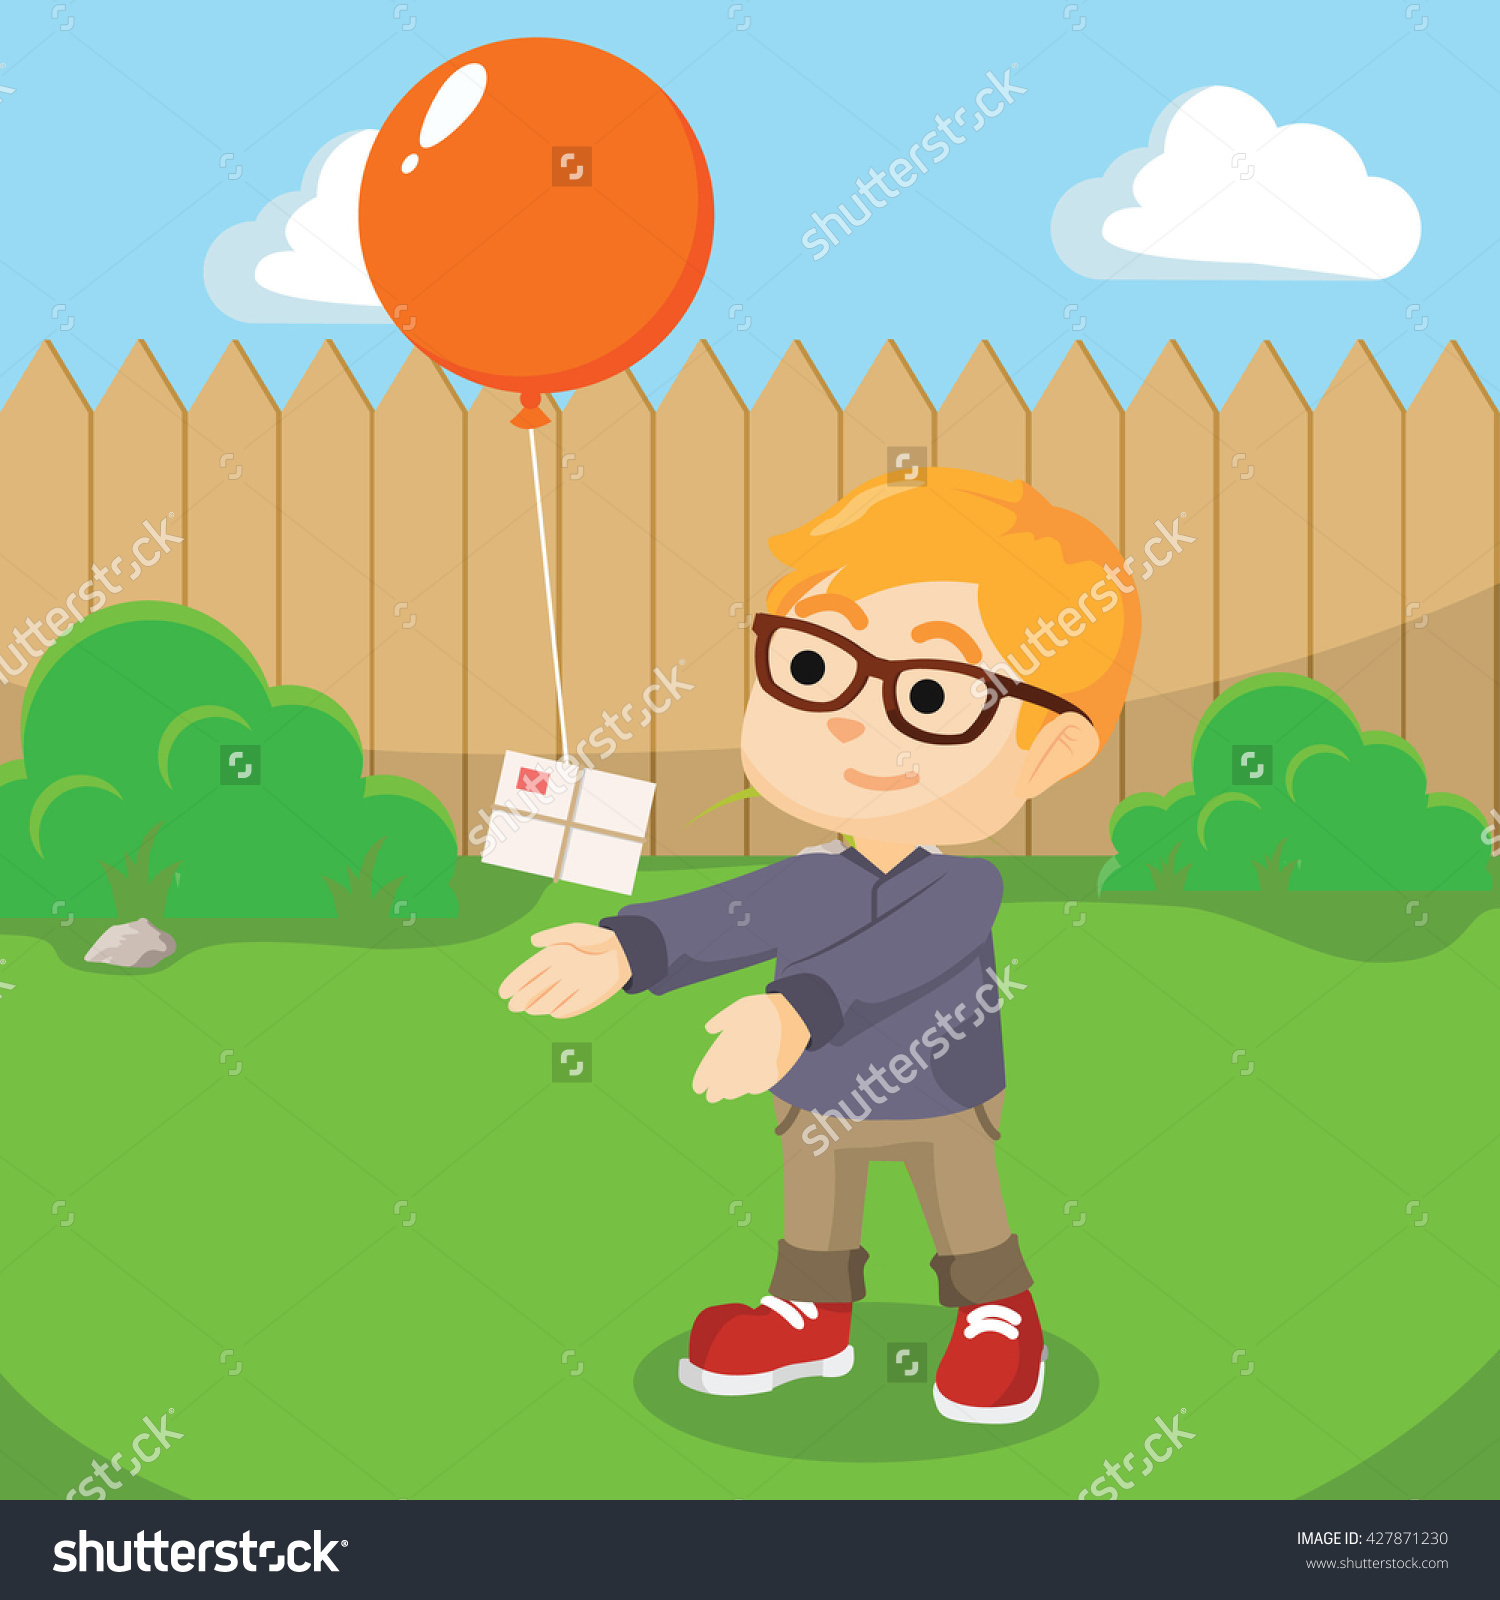 Boy Giving Gift Balloon Stock Photo 427871230 : Shutterstock image library library